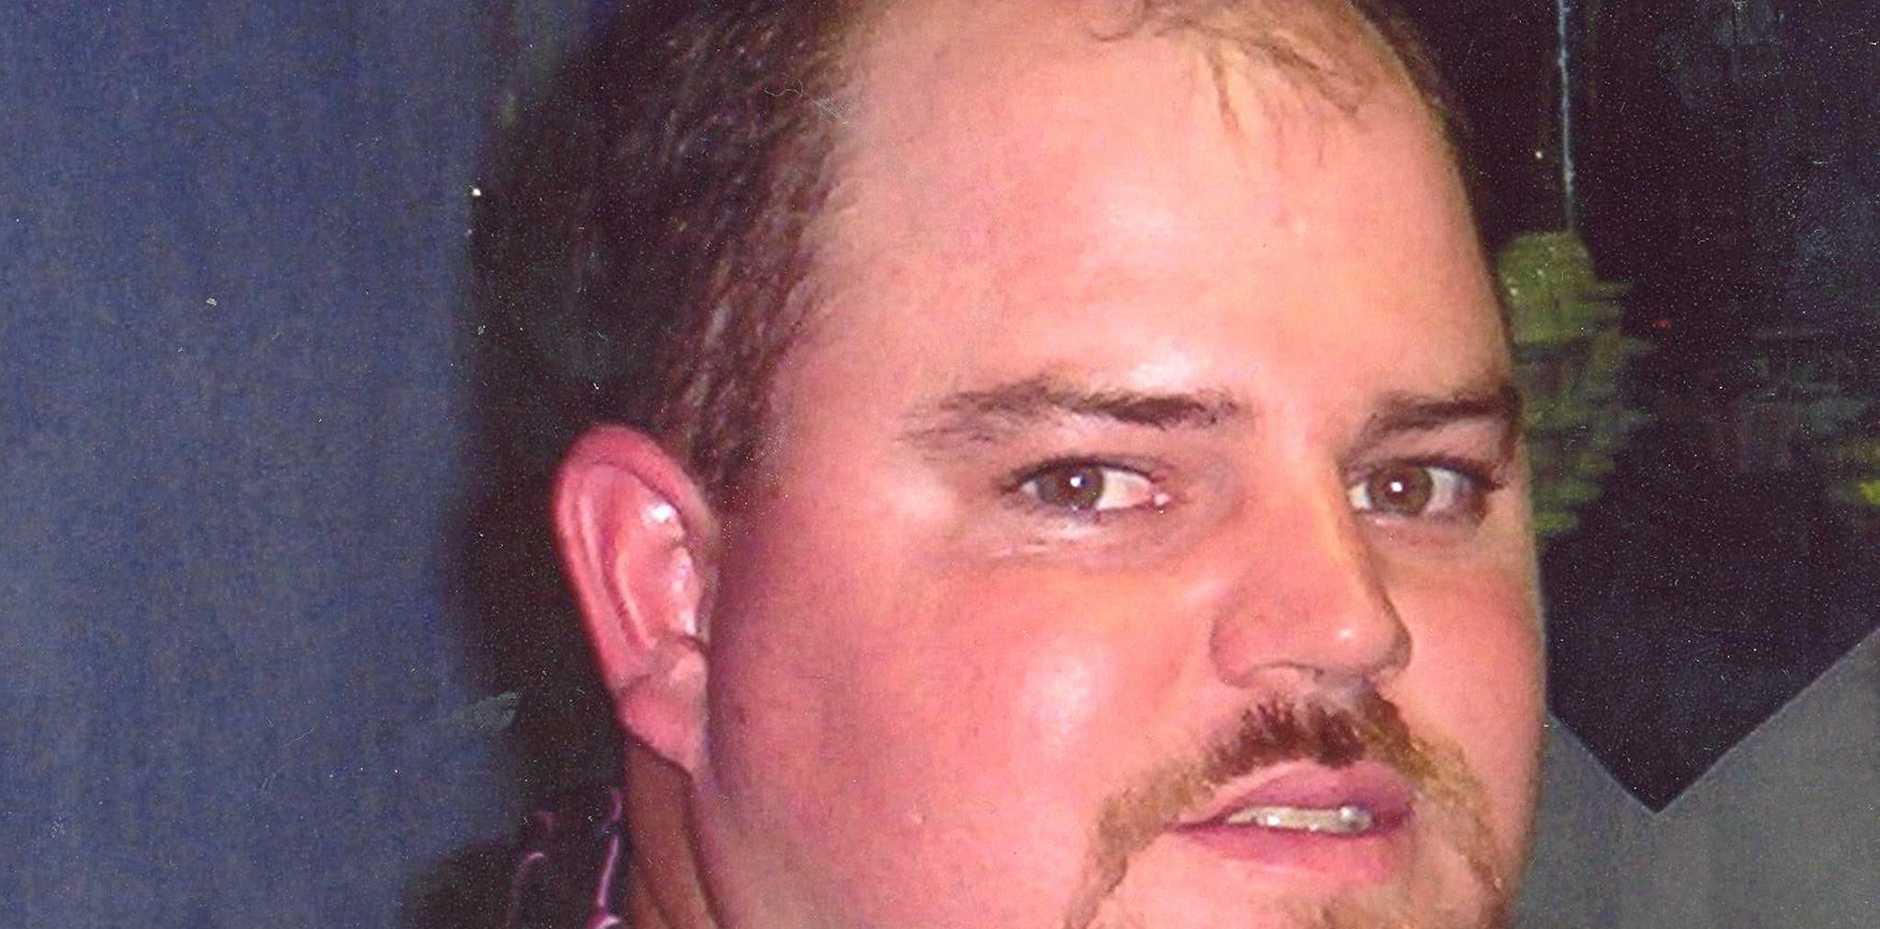 The body of Timothy Pullen, who was killed in April, 2012, has never been found.